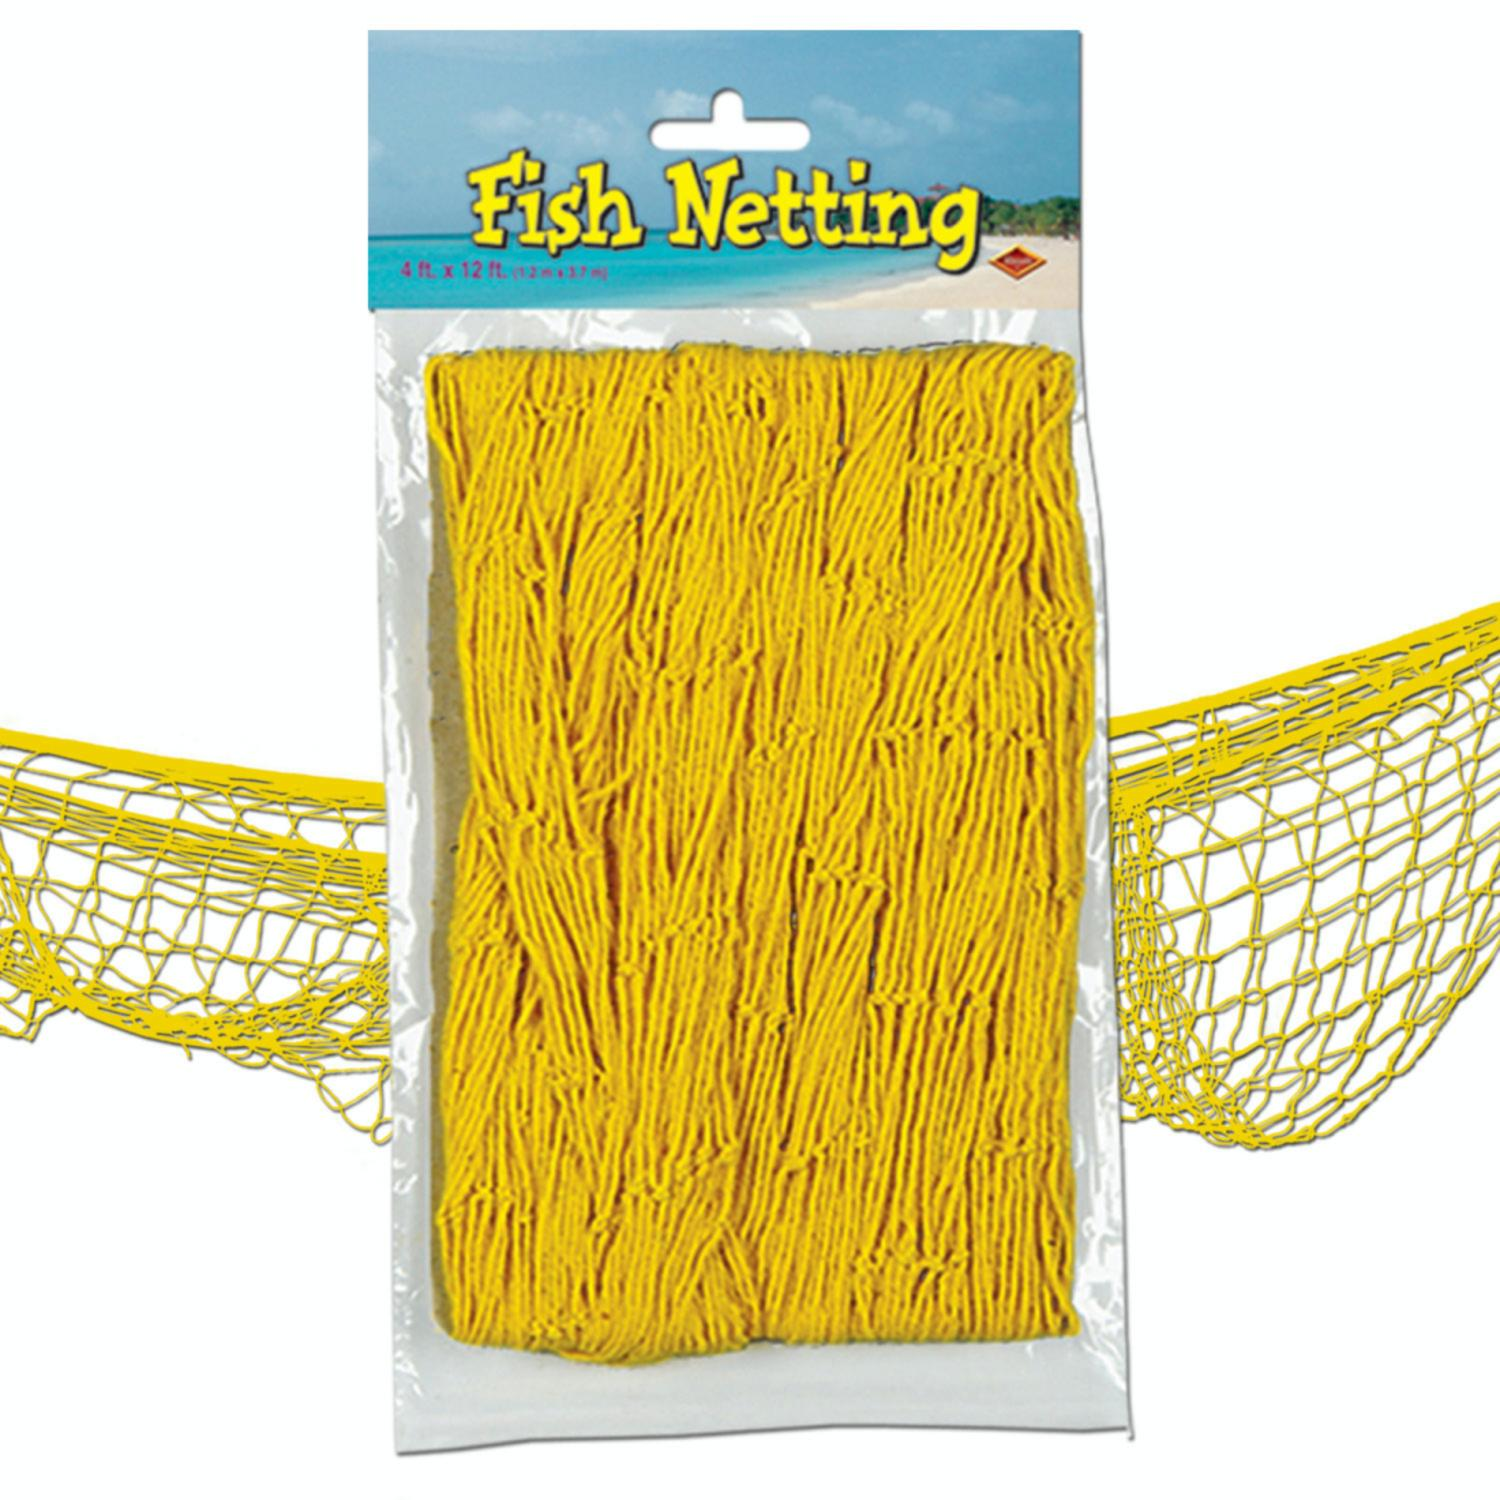 Pack of 12 Under the Sea Tropical Yellow Fish Netting Hanging Party Decor 12'